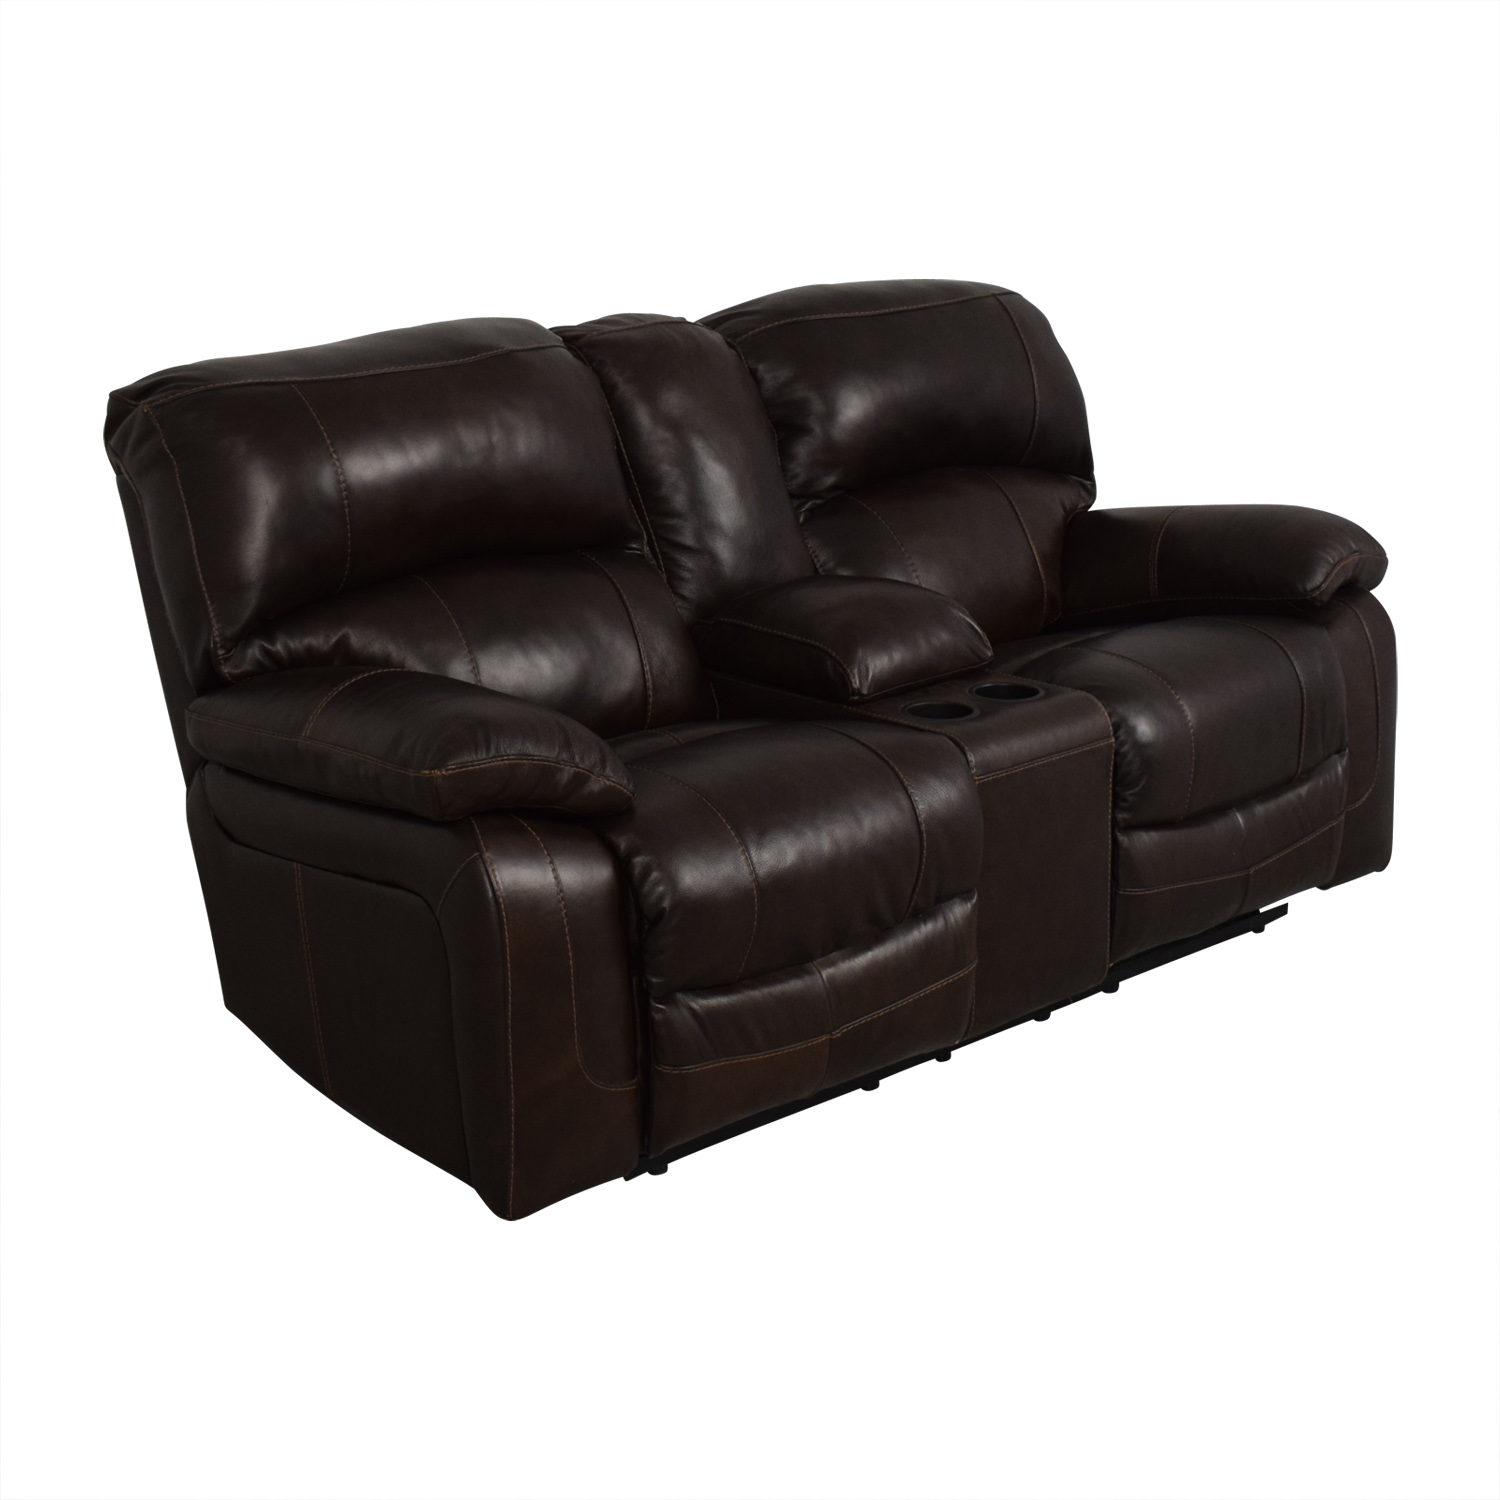 Ashley Furniture Ashley Furniture Reclining Sofa Dark Brown